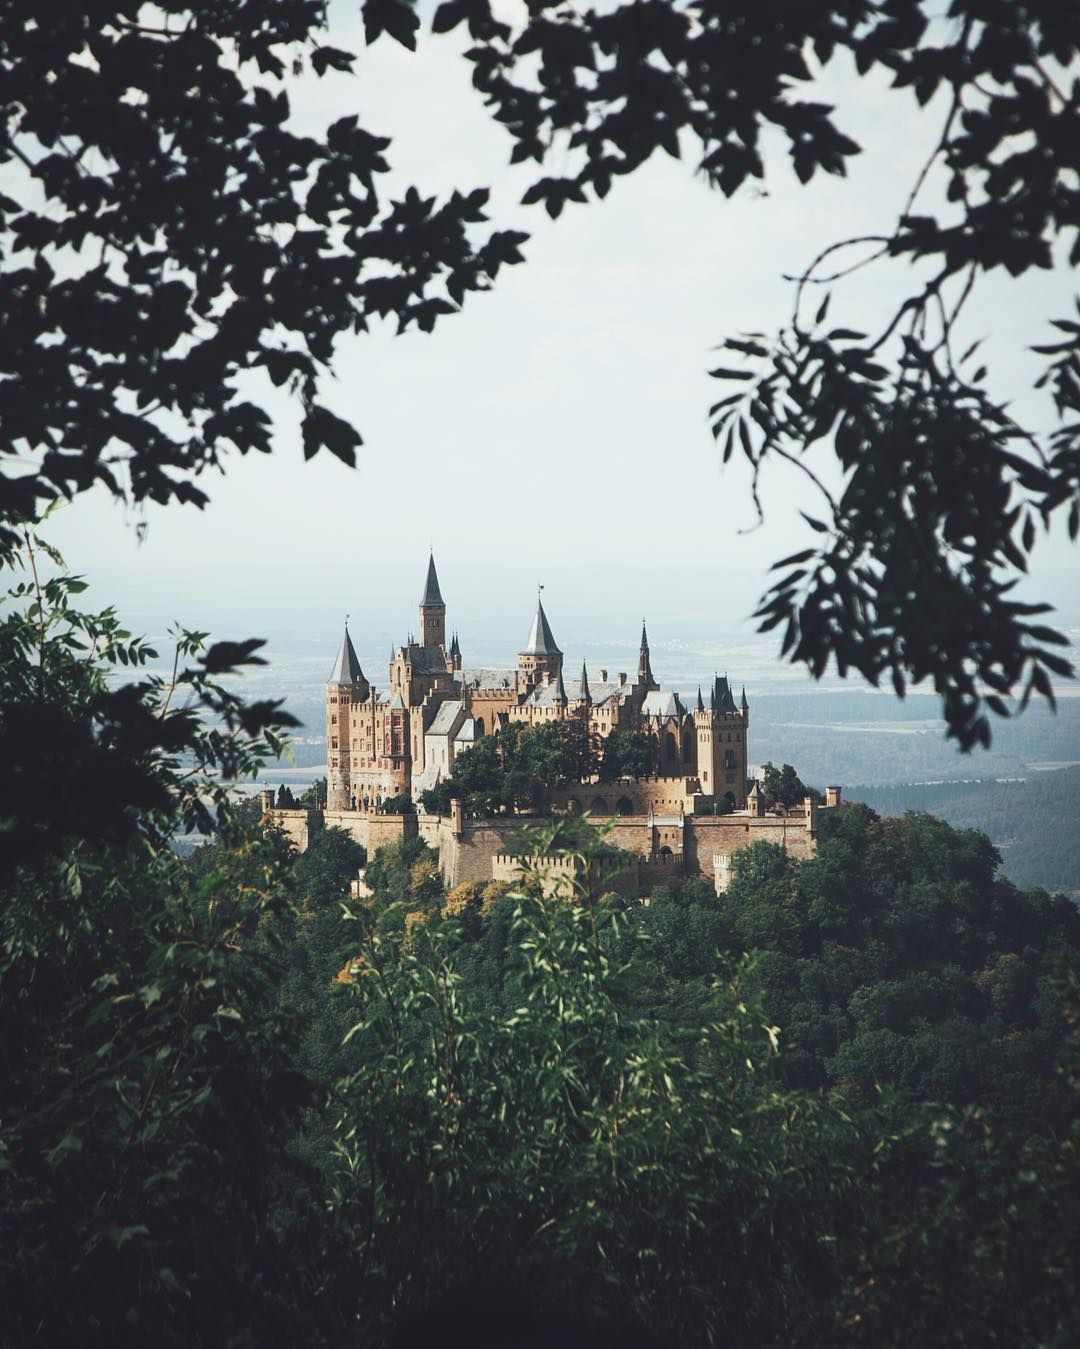 Hohenzollern Castle In Germany The Castle S Location Atop The Berg Hohenzollern Bluff Only Adds To The M Germany Castles Hohenzollern Castle Incredible Places